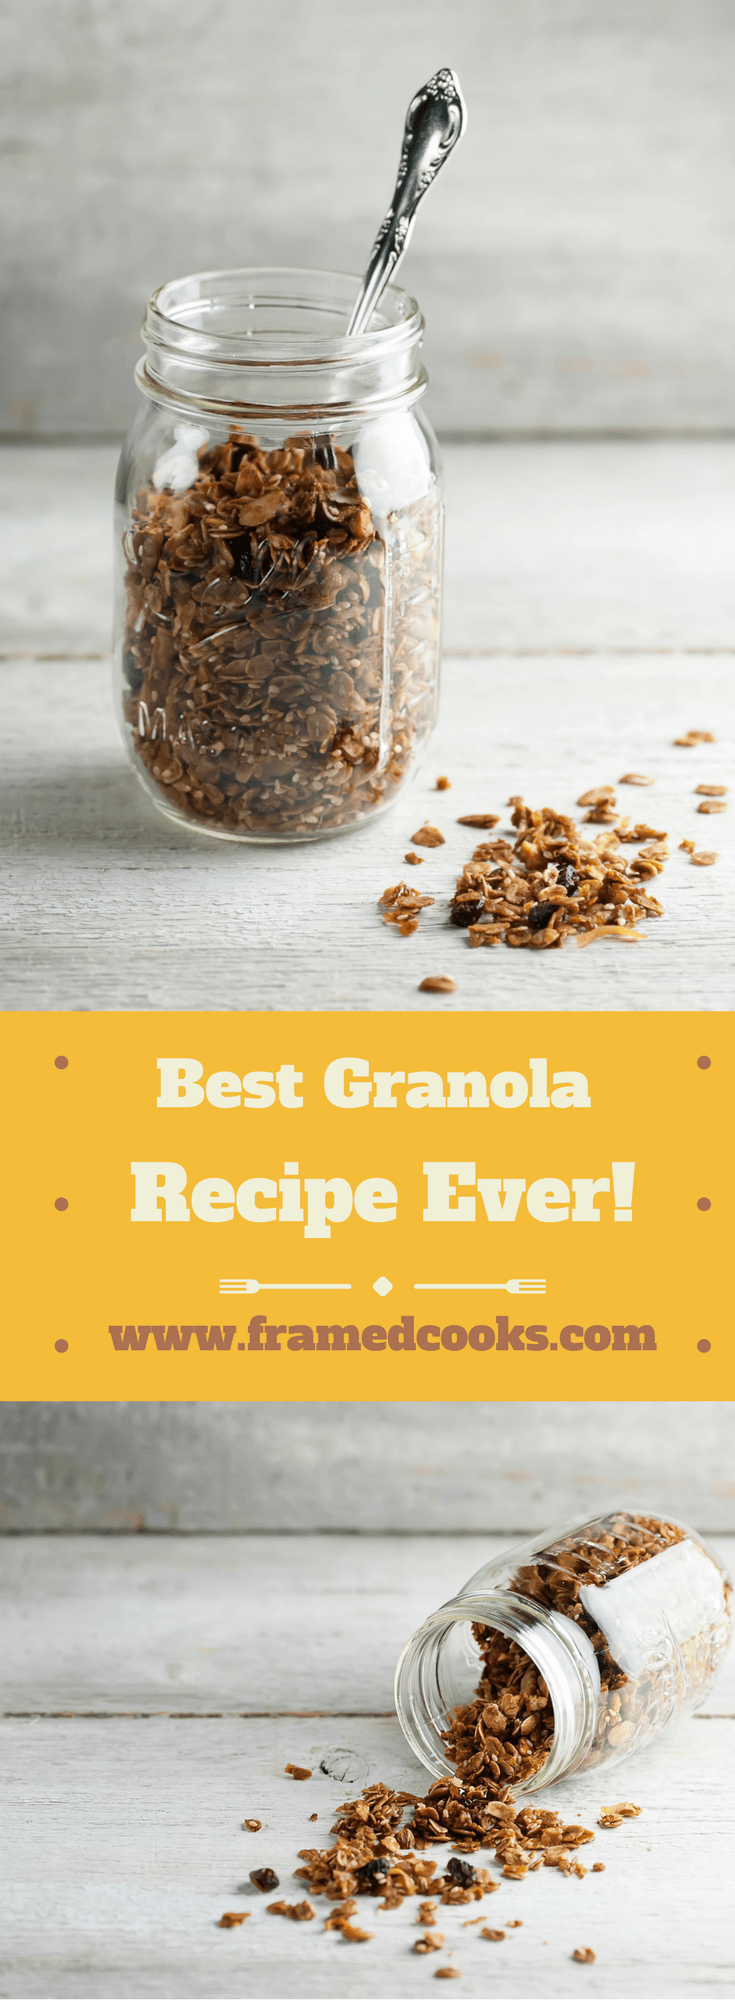 Looking for the best granola recipe ever? You've found it!  Get ready for a delicious breakfast and for your kitchen to smell heavenly.